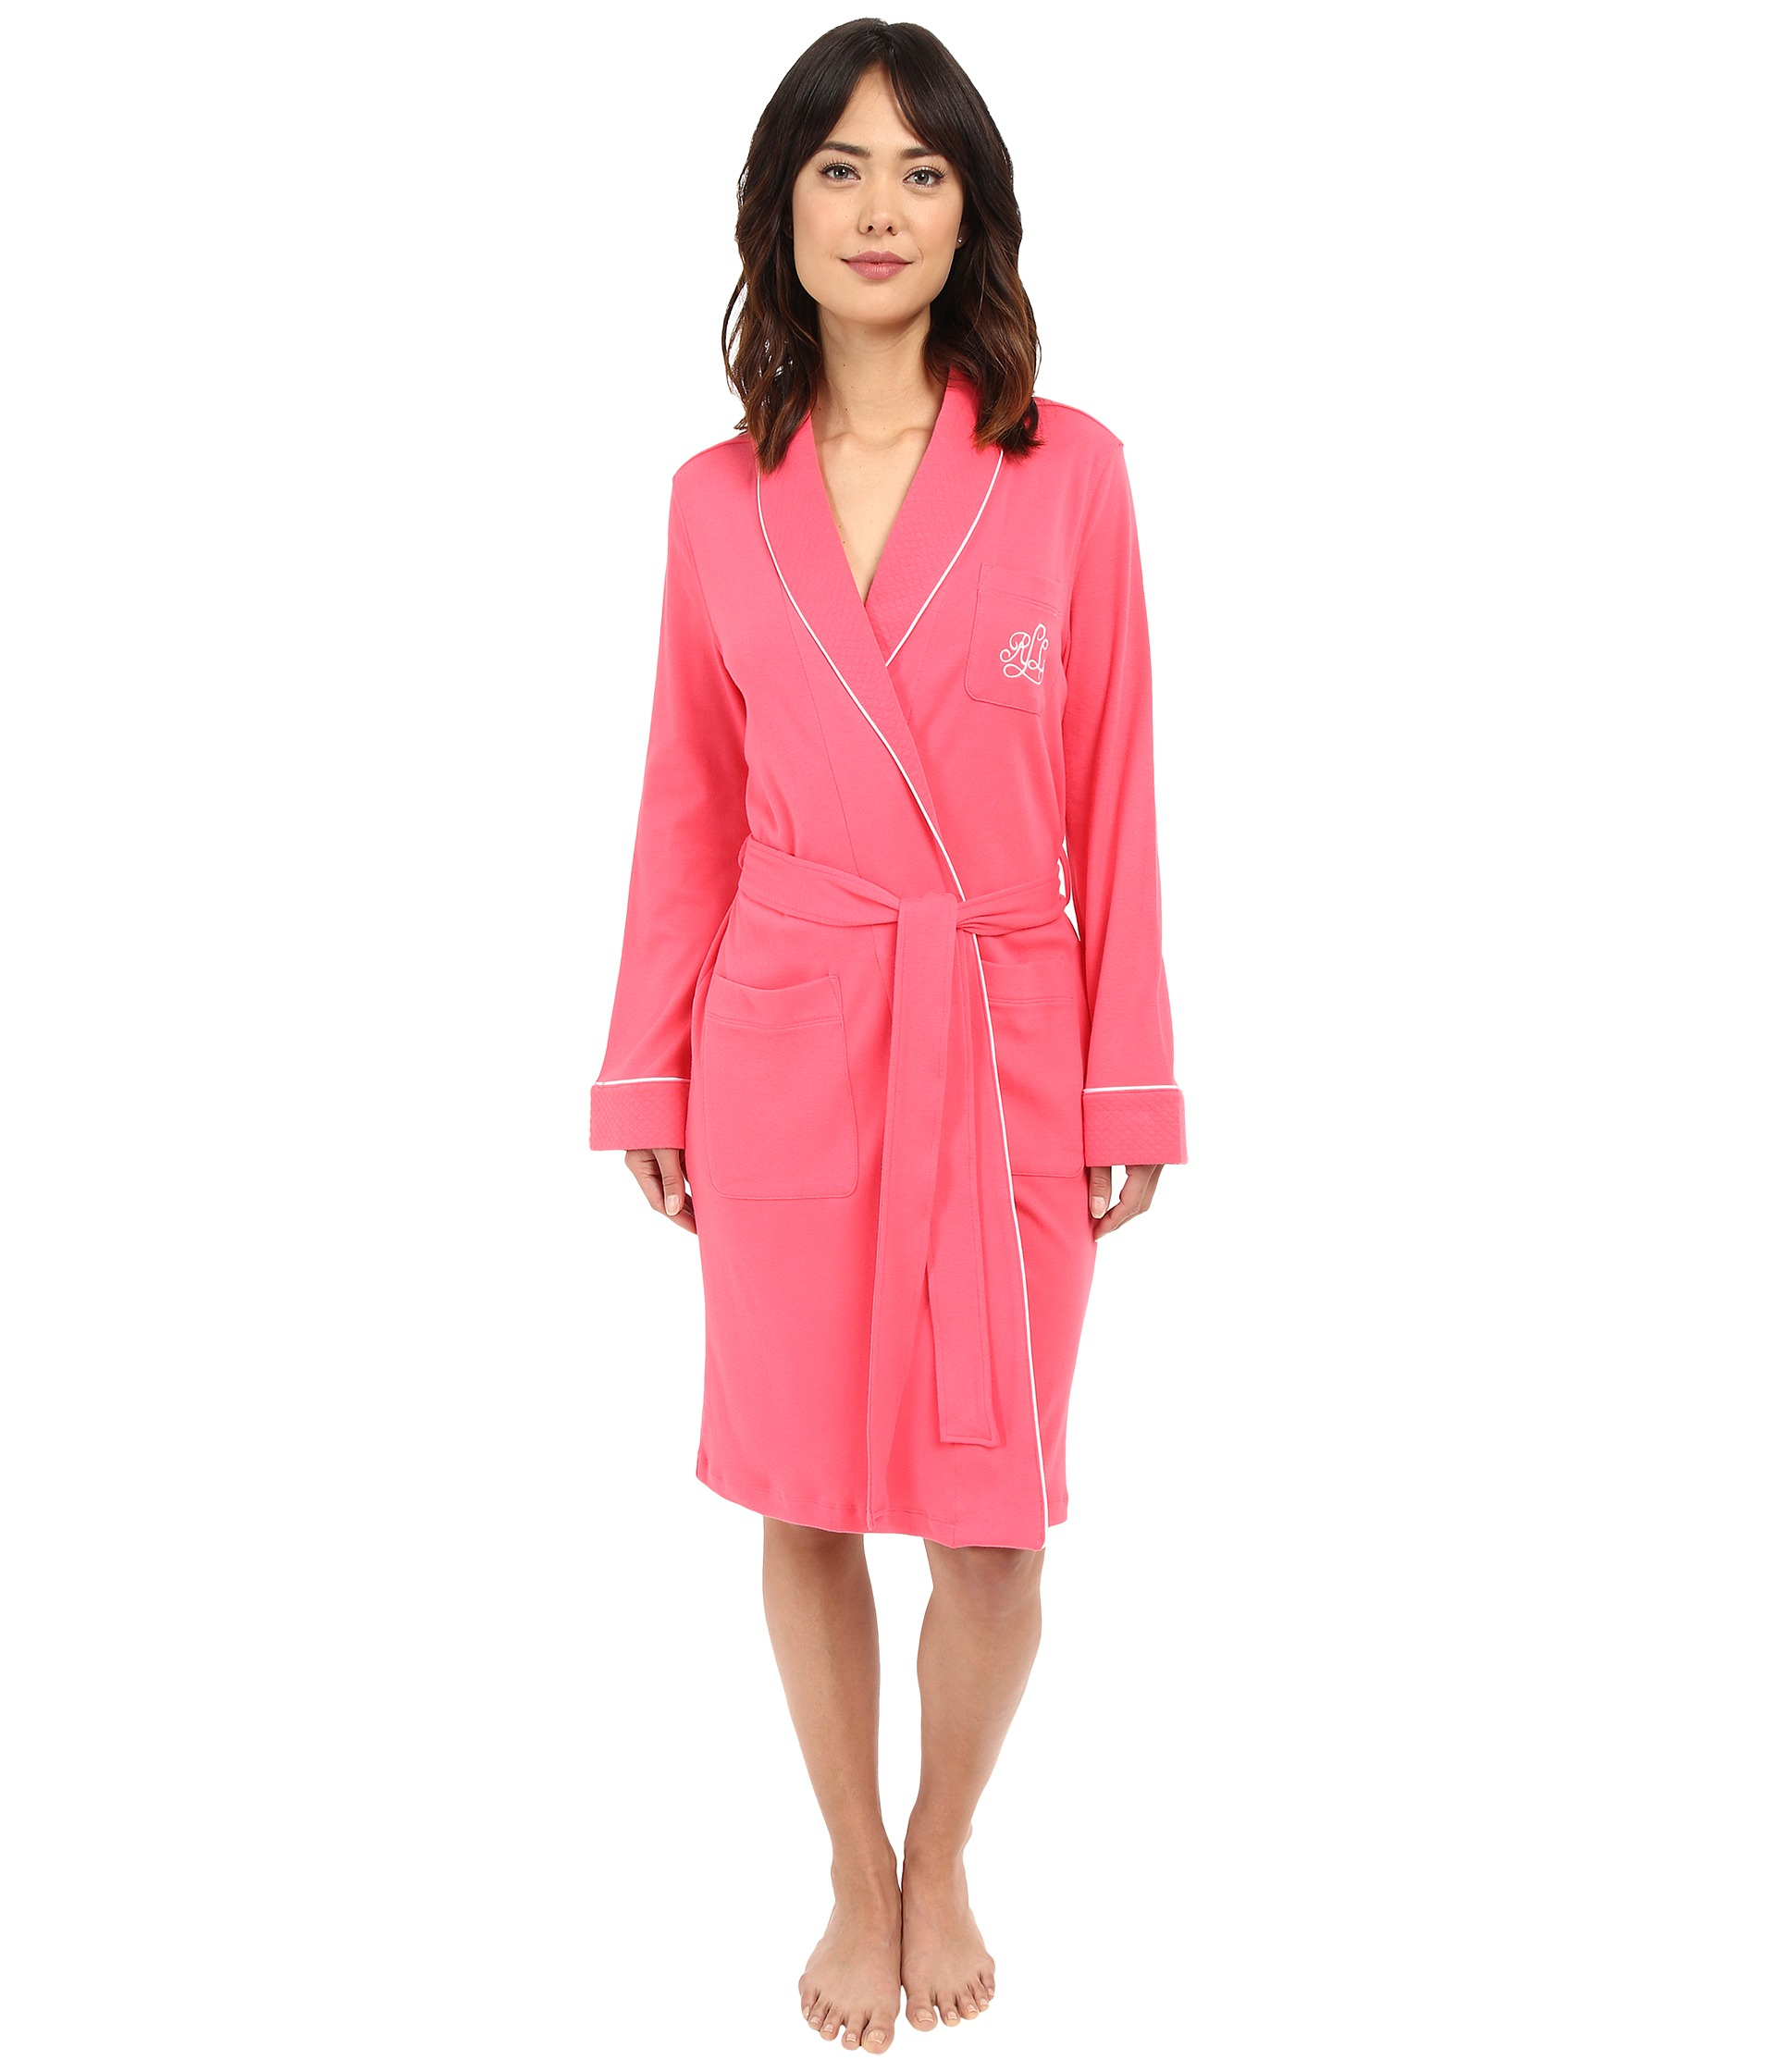 lauren ralph lauren essentials quilted collar and cuff robe coral free shipping. Black Bedroom Furniture Sets. Home Design Ideas